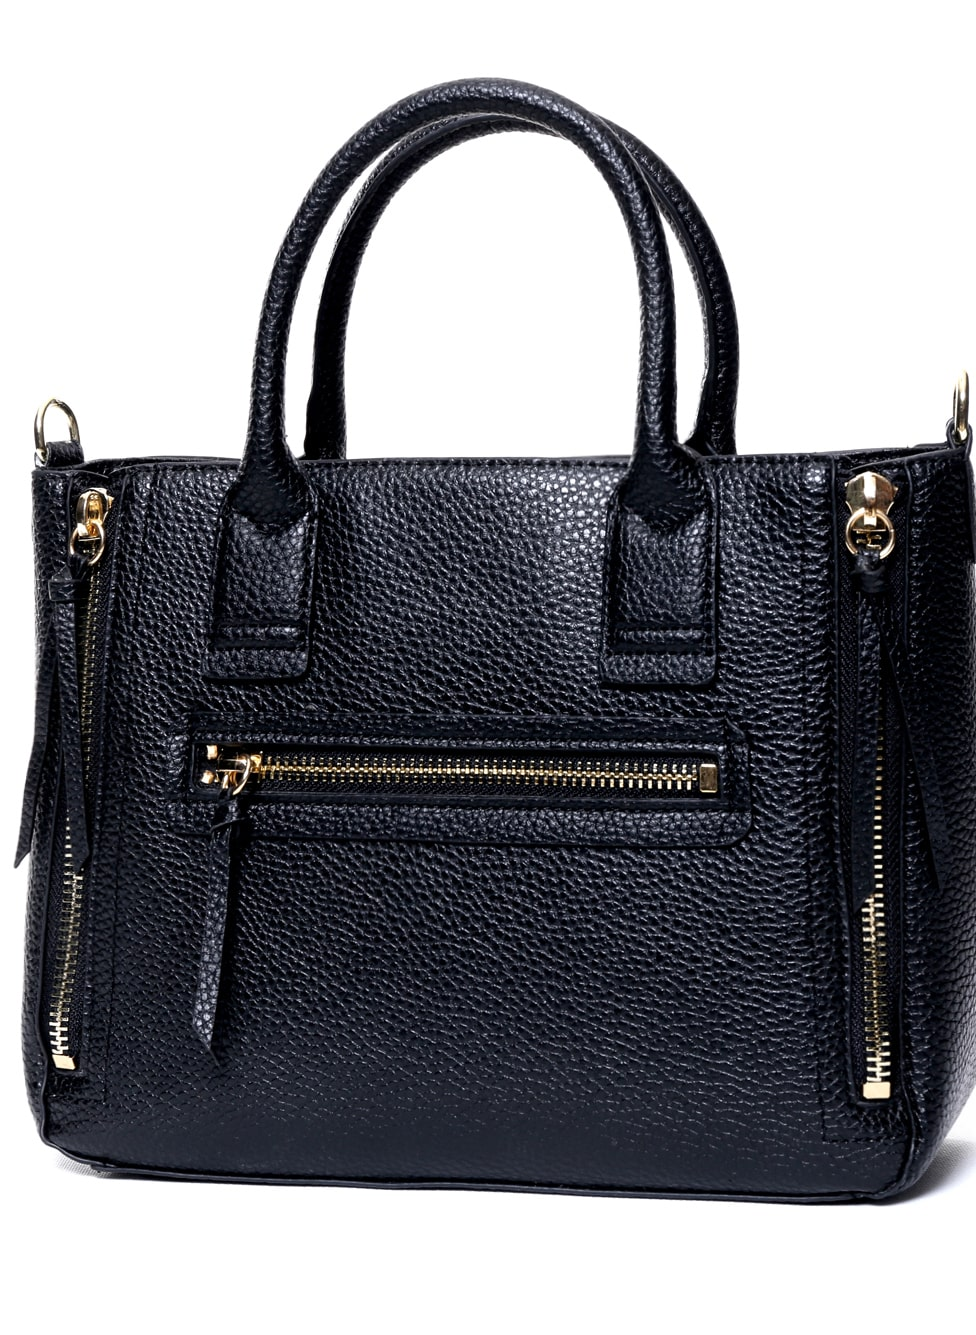 Black Zipper PU Tote Bag -SheIn(Sheinside)